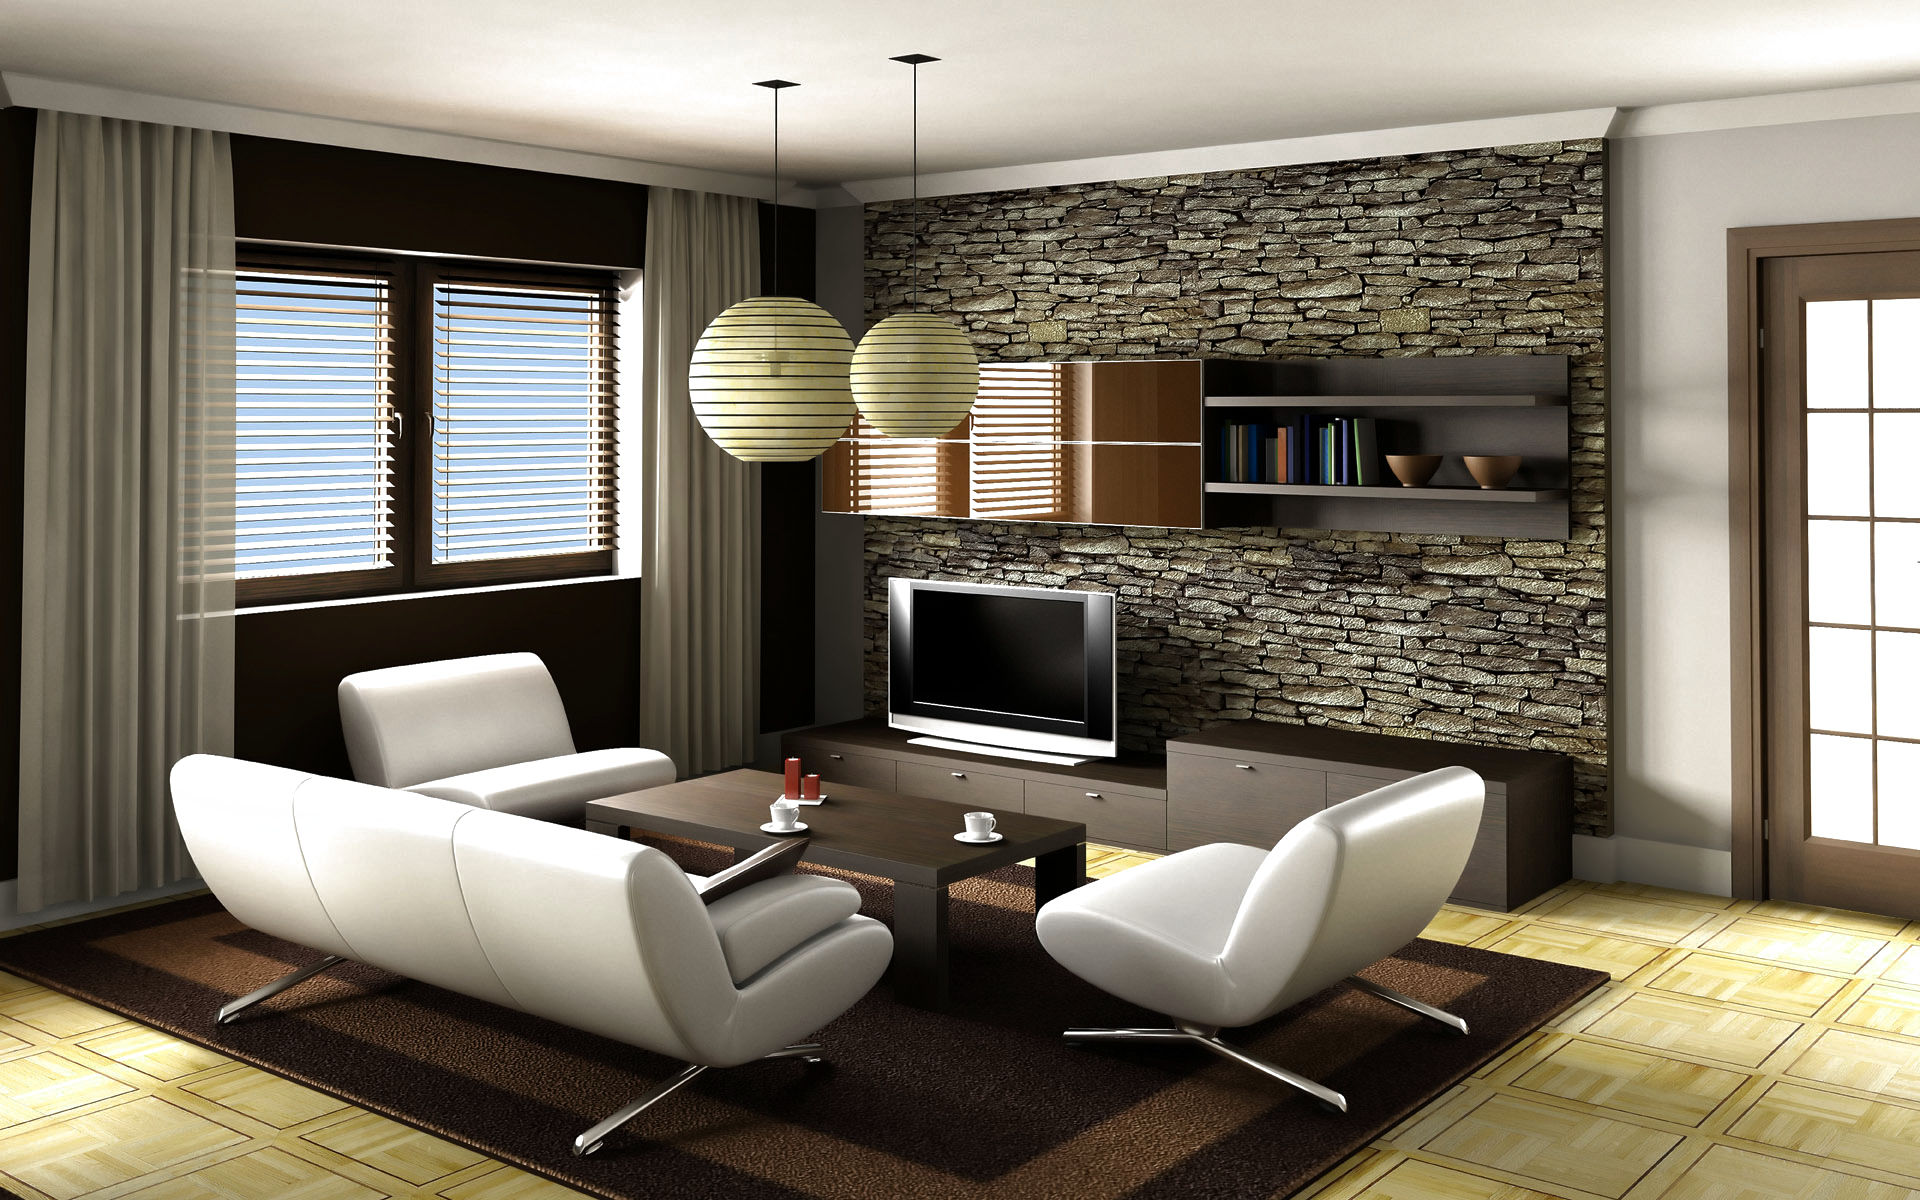 16 modern living room furniture ideas design hgnv com Modern living room furniture ideas